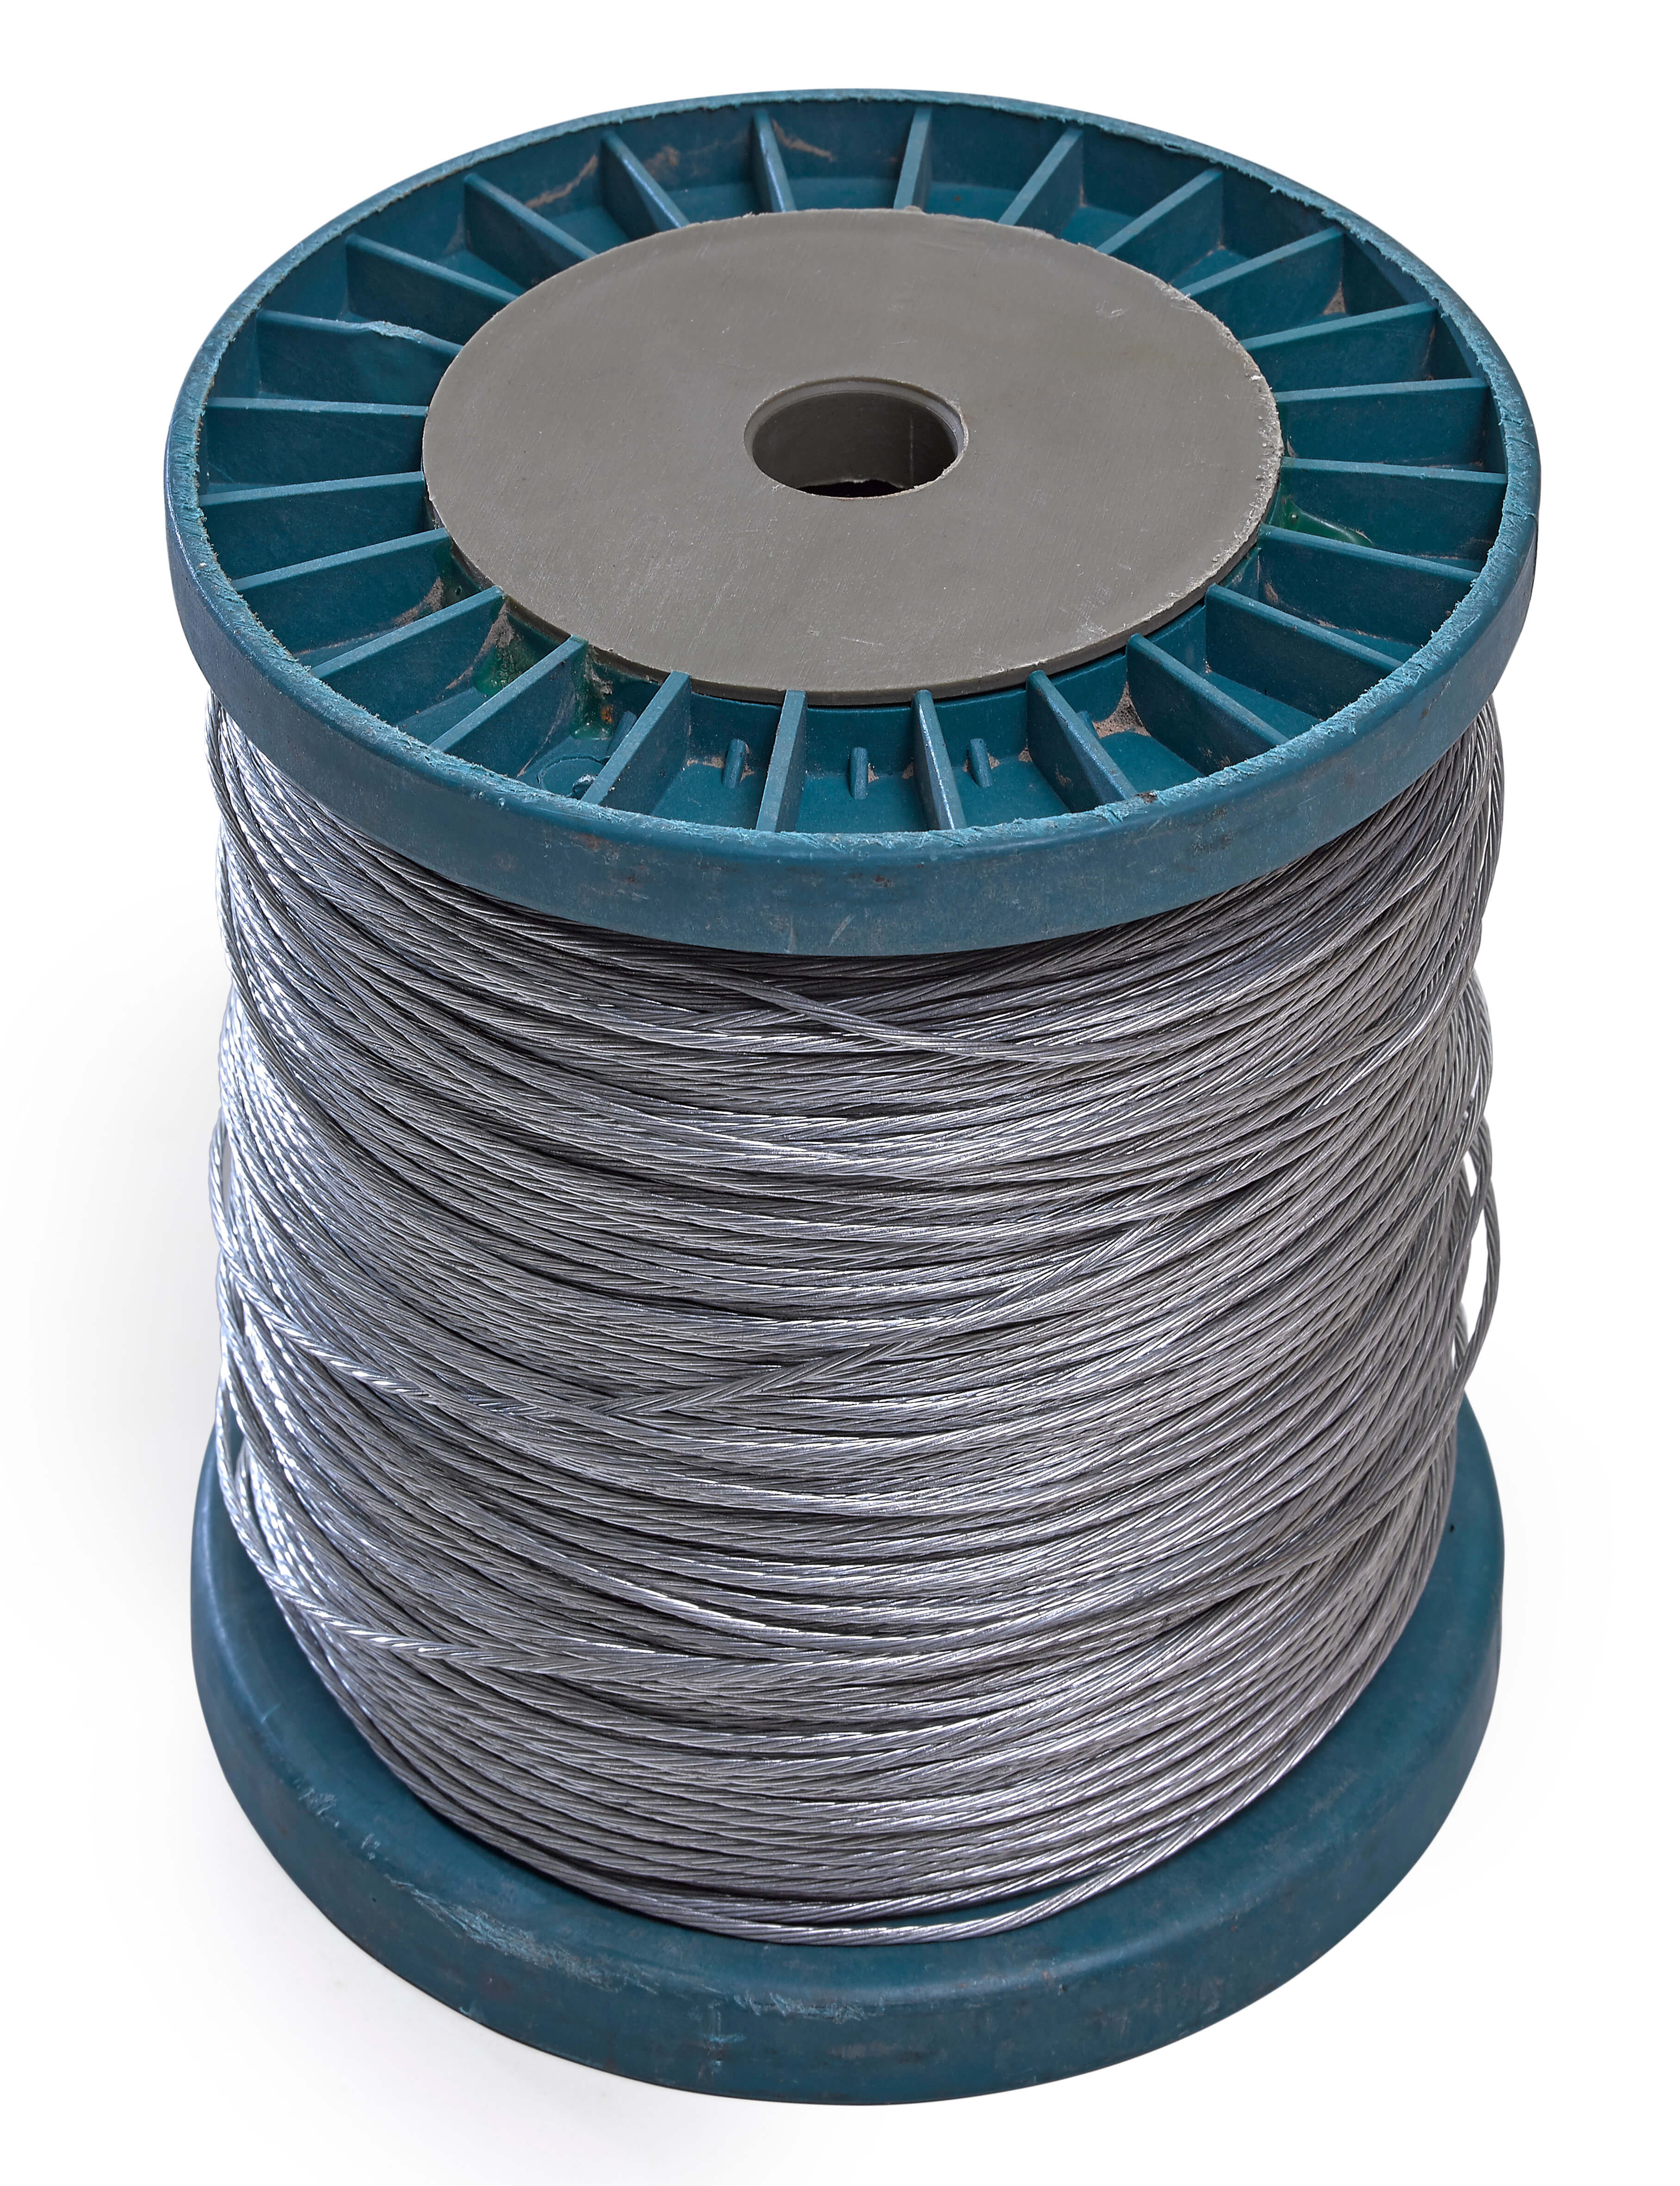 7 Strand Electric Fence Wire | Uniwire